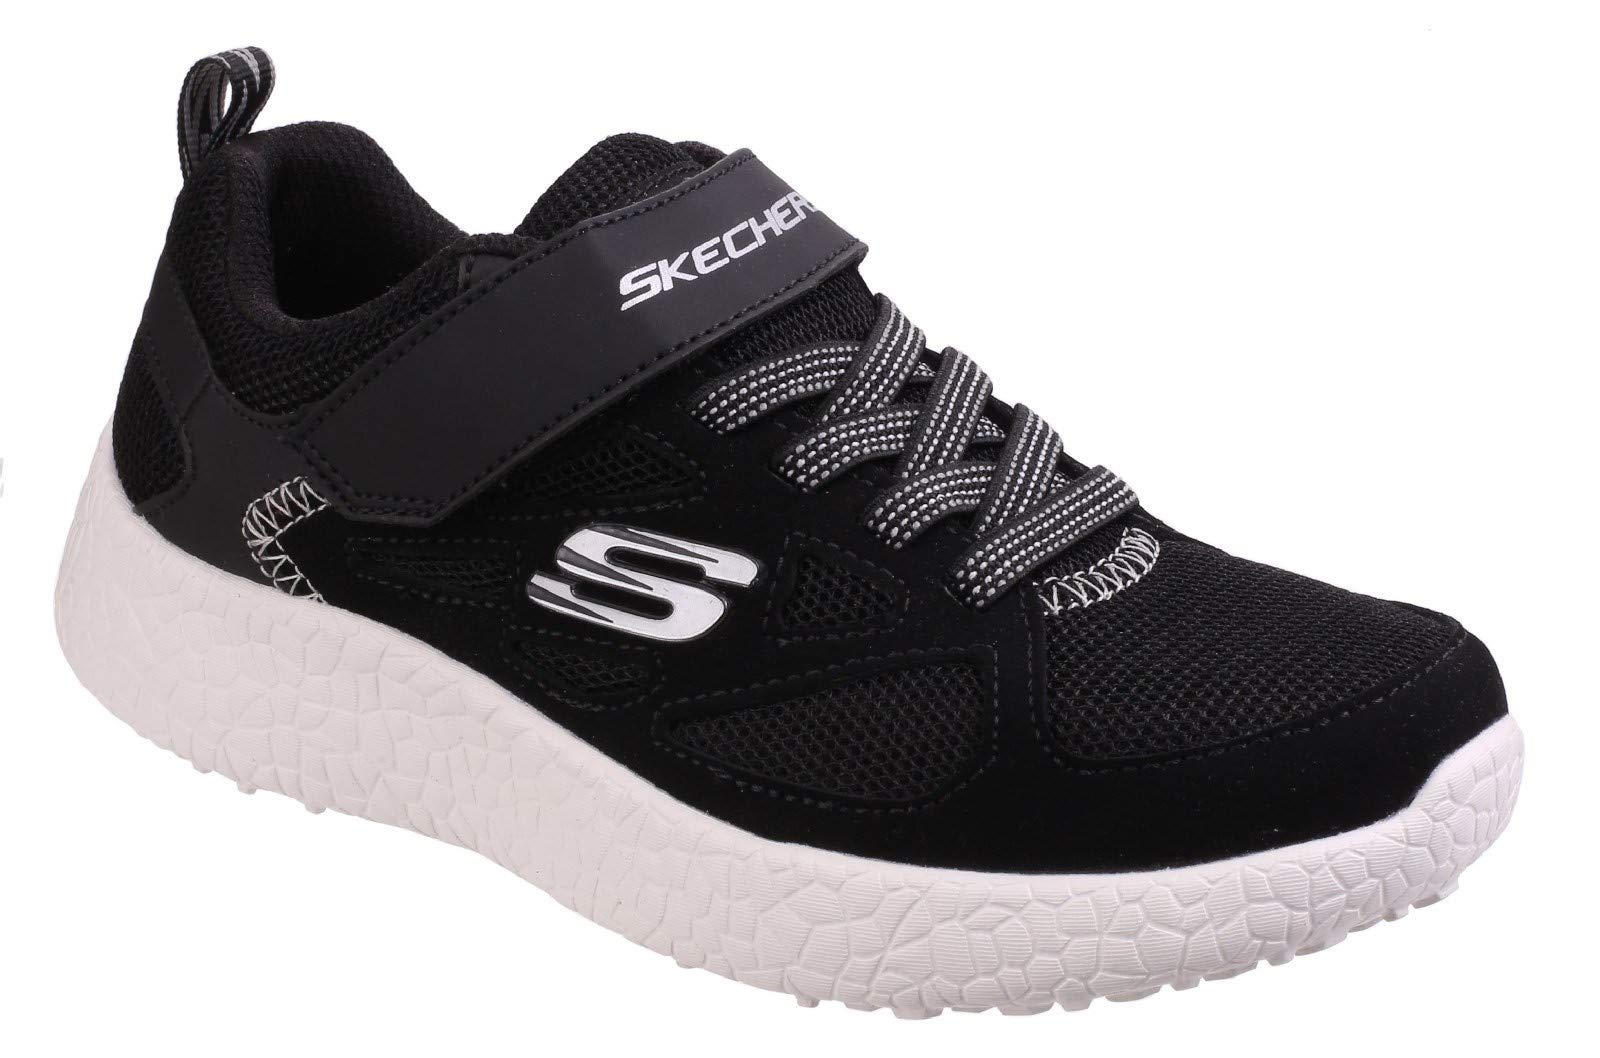 Skechers Boys' Burst Power Sprints Sneaker,Black/White,US 13.5 M